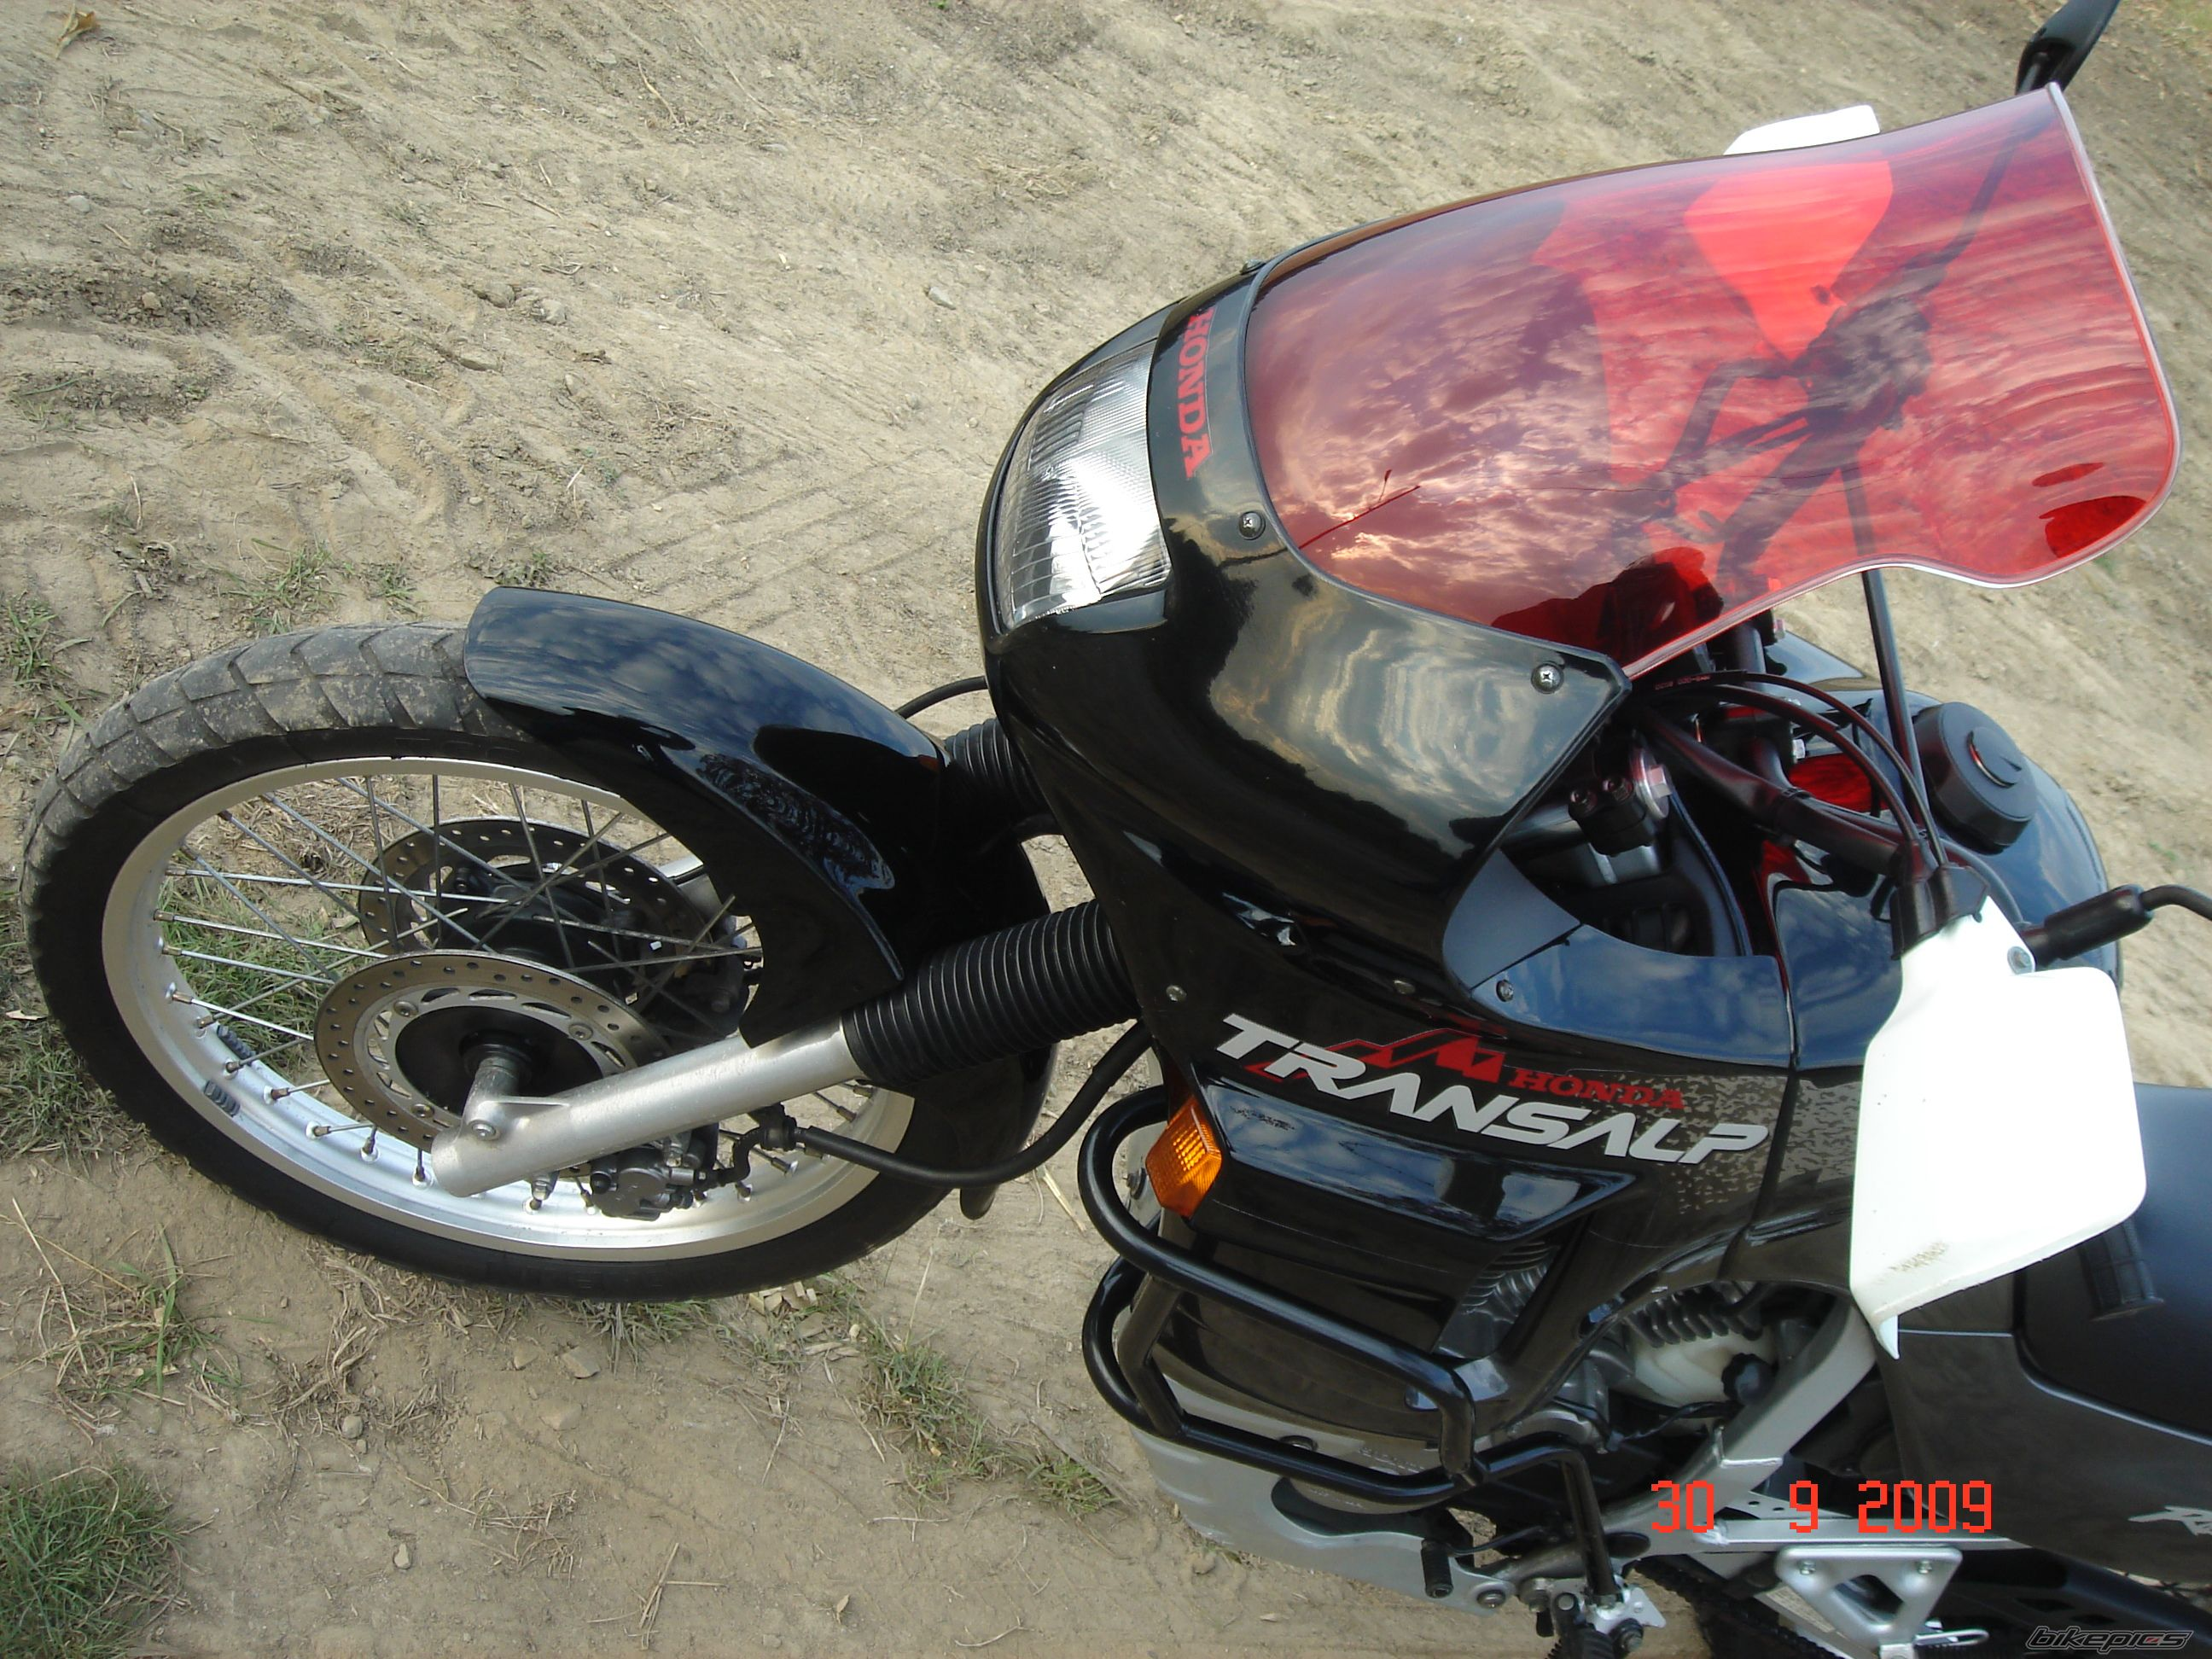 1999 HONDA XL 600V TRANSALP | Picture 1793743 motorcycle photo